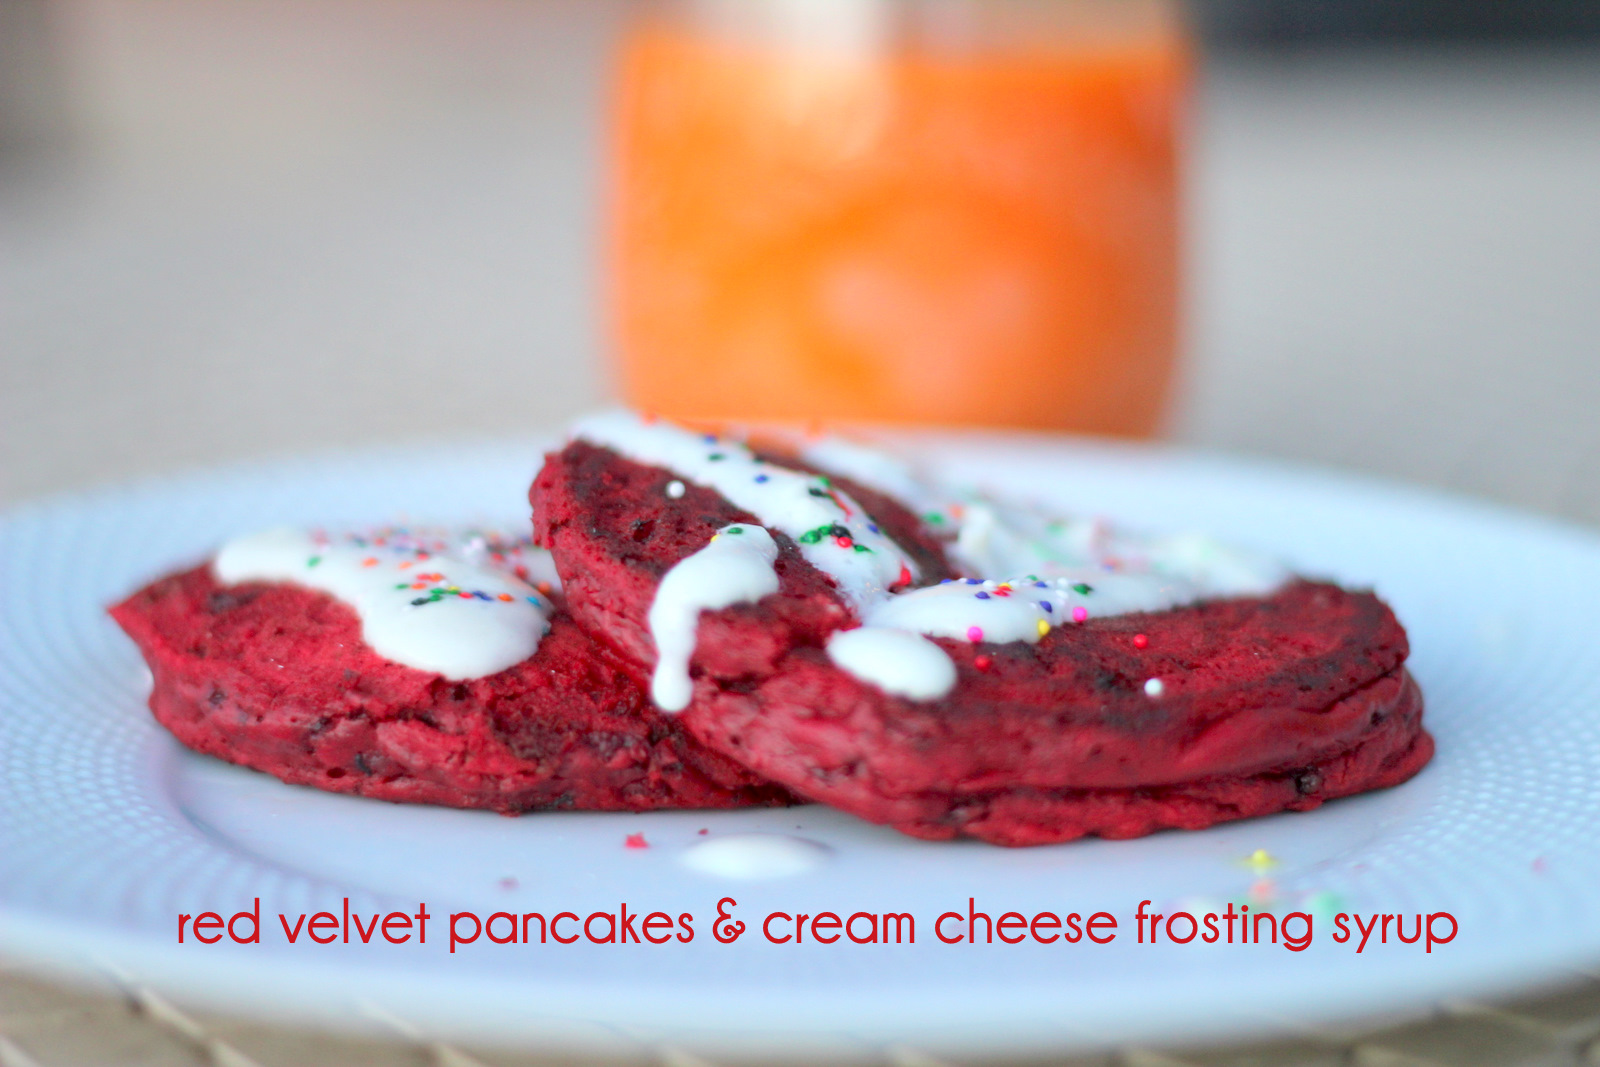 ... day yummies- red velvet pancakes and cream cheese frosting syrup